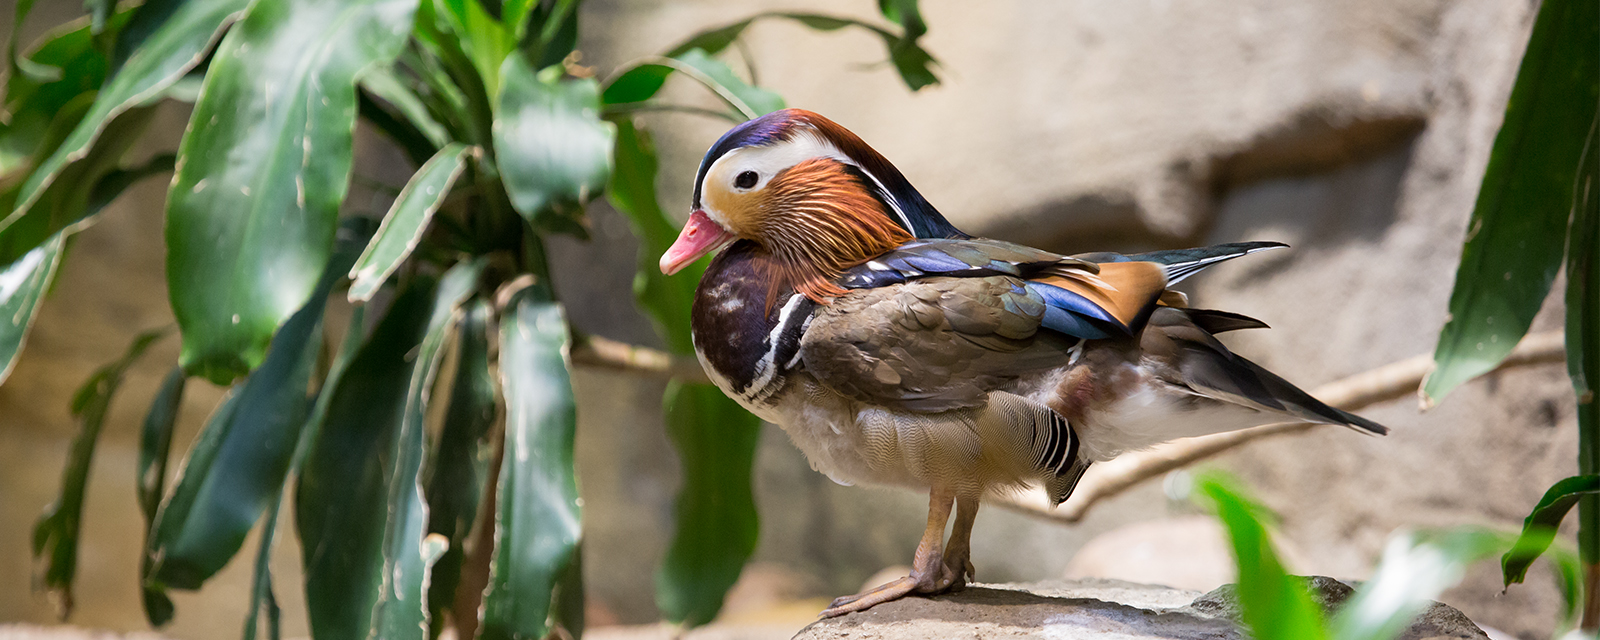 Mandarin duck in exhibit